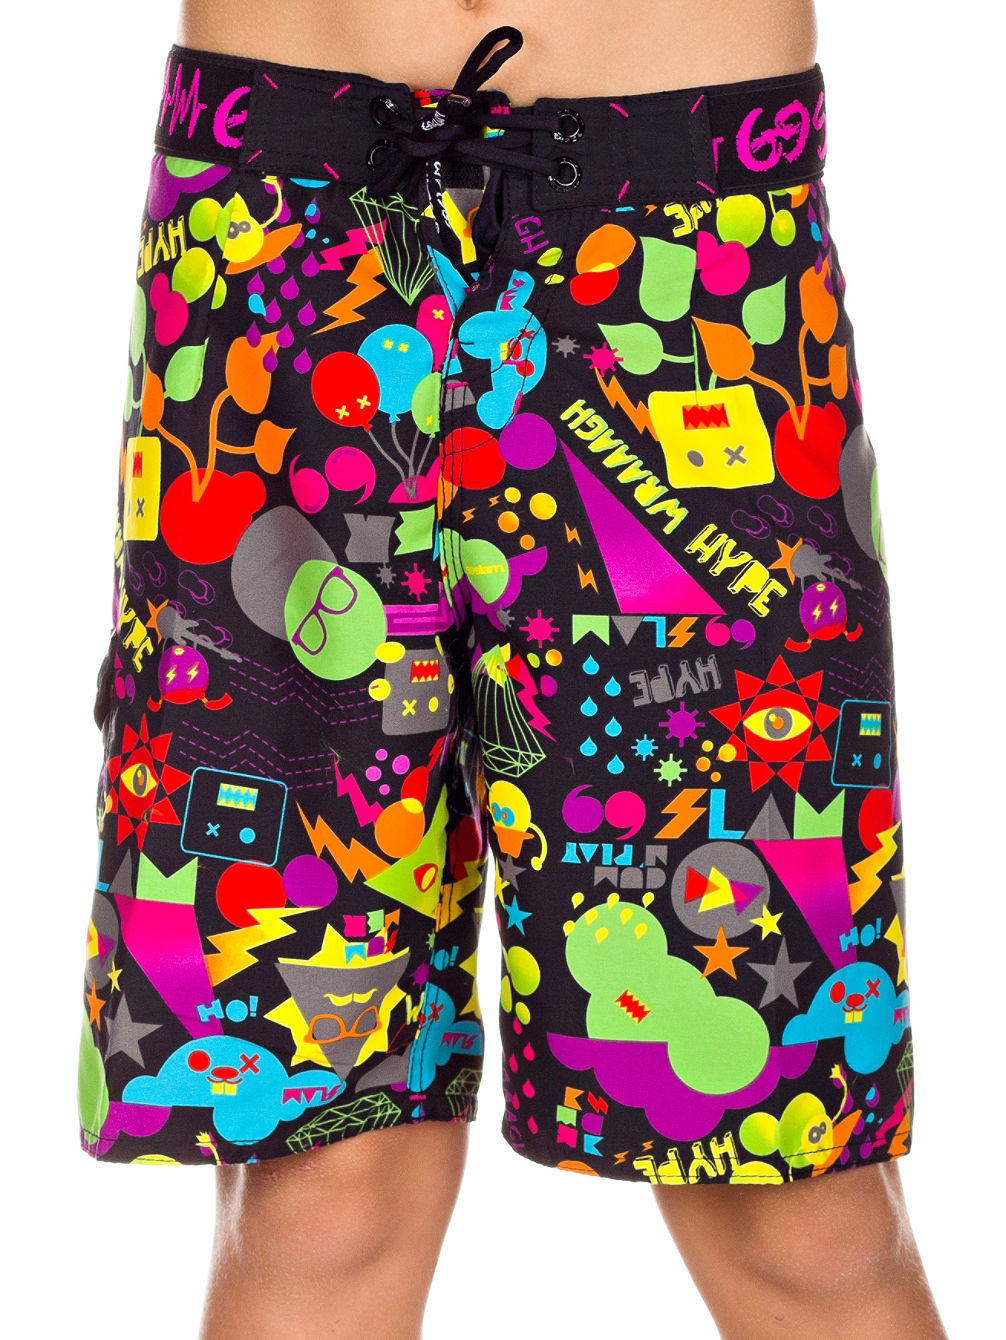 Summer Black Boardshort Youth